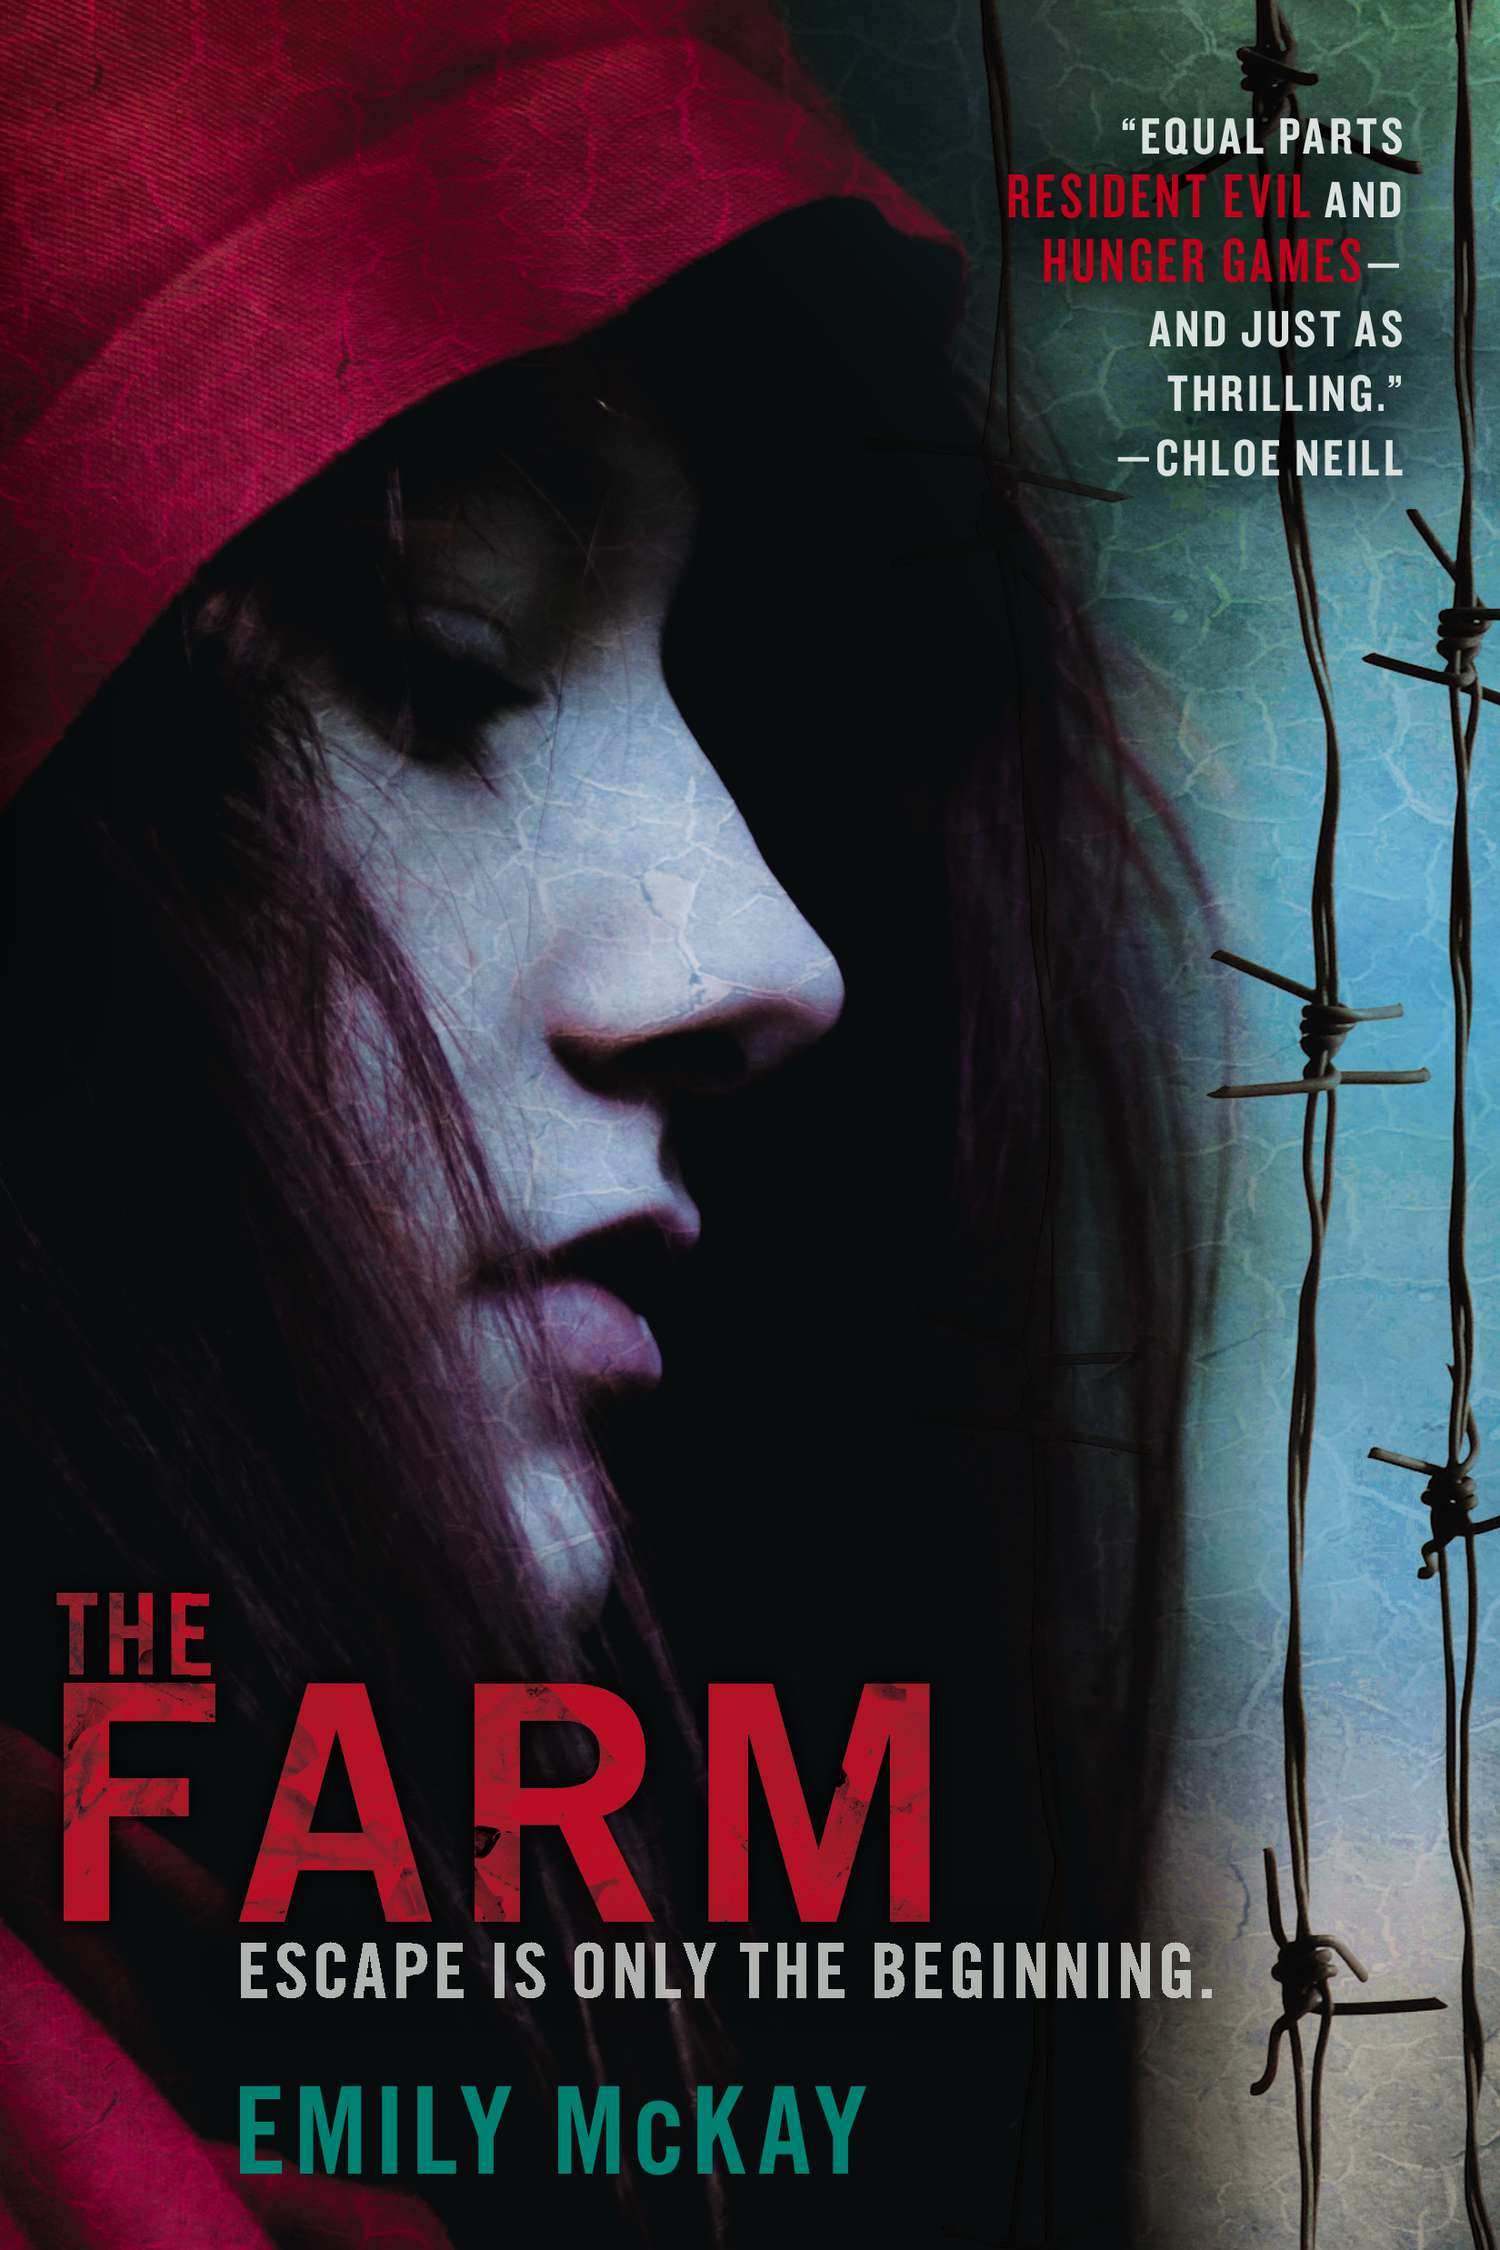 The Farm by Emily McKay Blog Tour and Giveaway